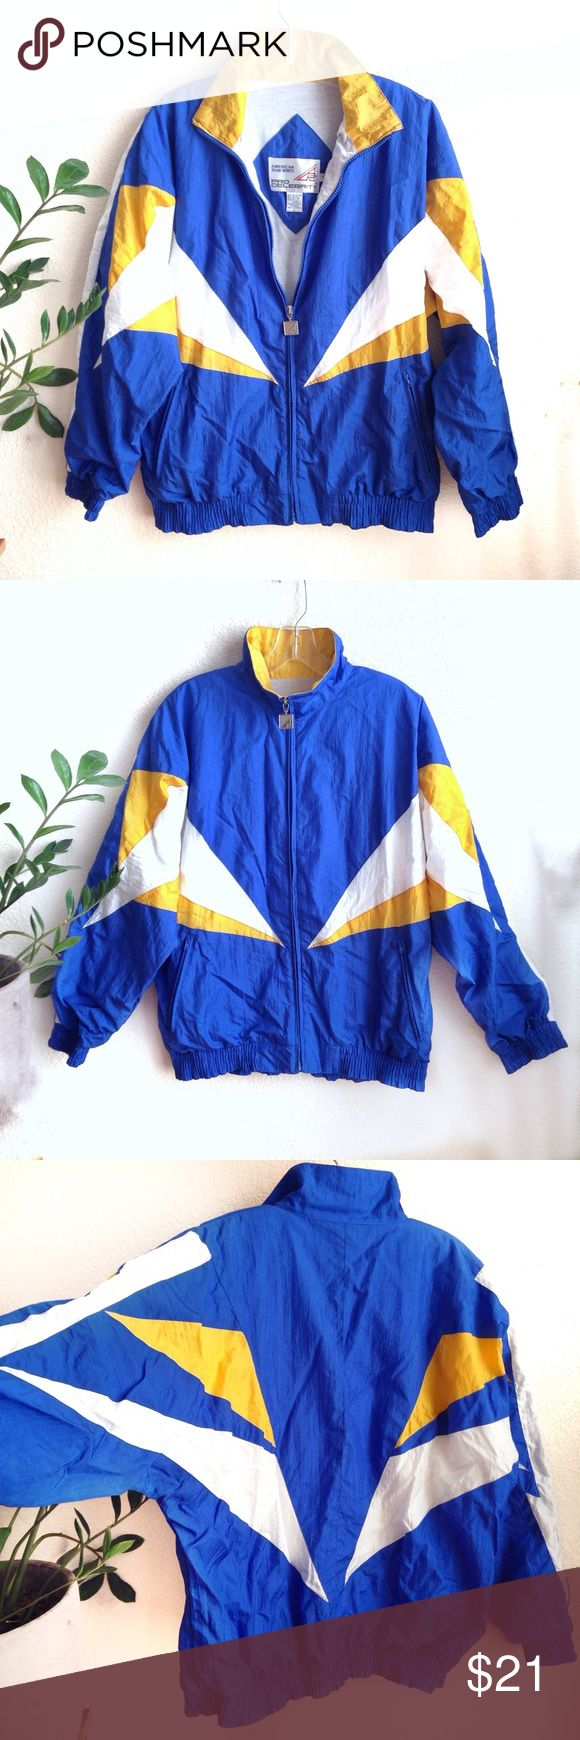 VTG⭐️90s Super Rad Color Block Windbreaker! Amazing retro 90's goodness right here! In amazing vintage condition. Blue, white & yellow color block day glow jacket. Perfect for the Los Angeles (San Diego) Chargers fan ⚡️ Size S, fits more like a M/L (probably a men's size 😜). Feel free to make me an offer! ⚡️💙⚡️💙⚡️ NFL 80s Retro Nike Adidas Puma Adidas Vintage Jackets & Coats